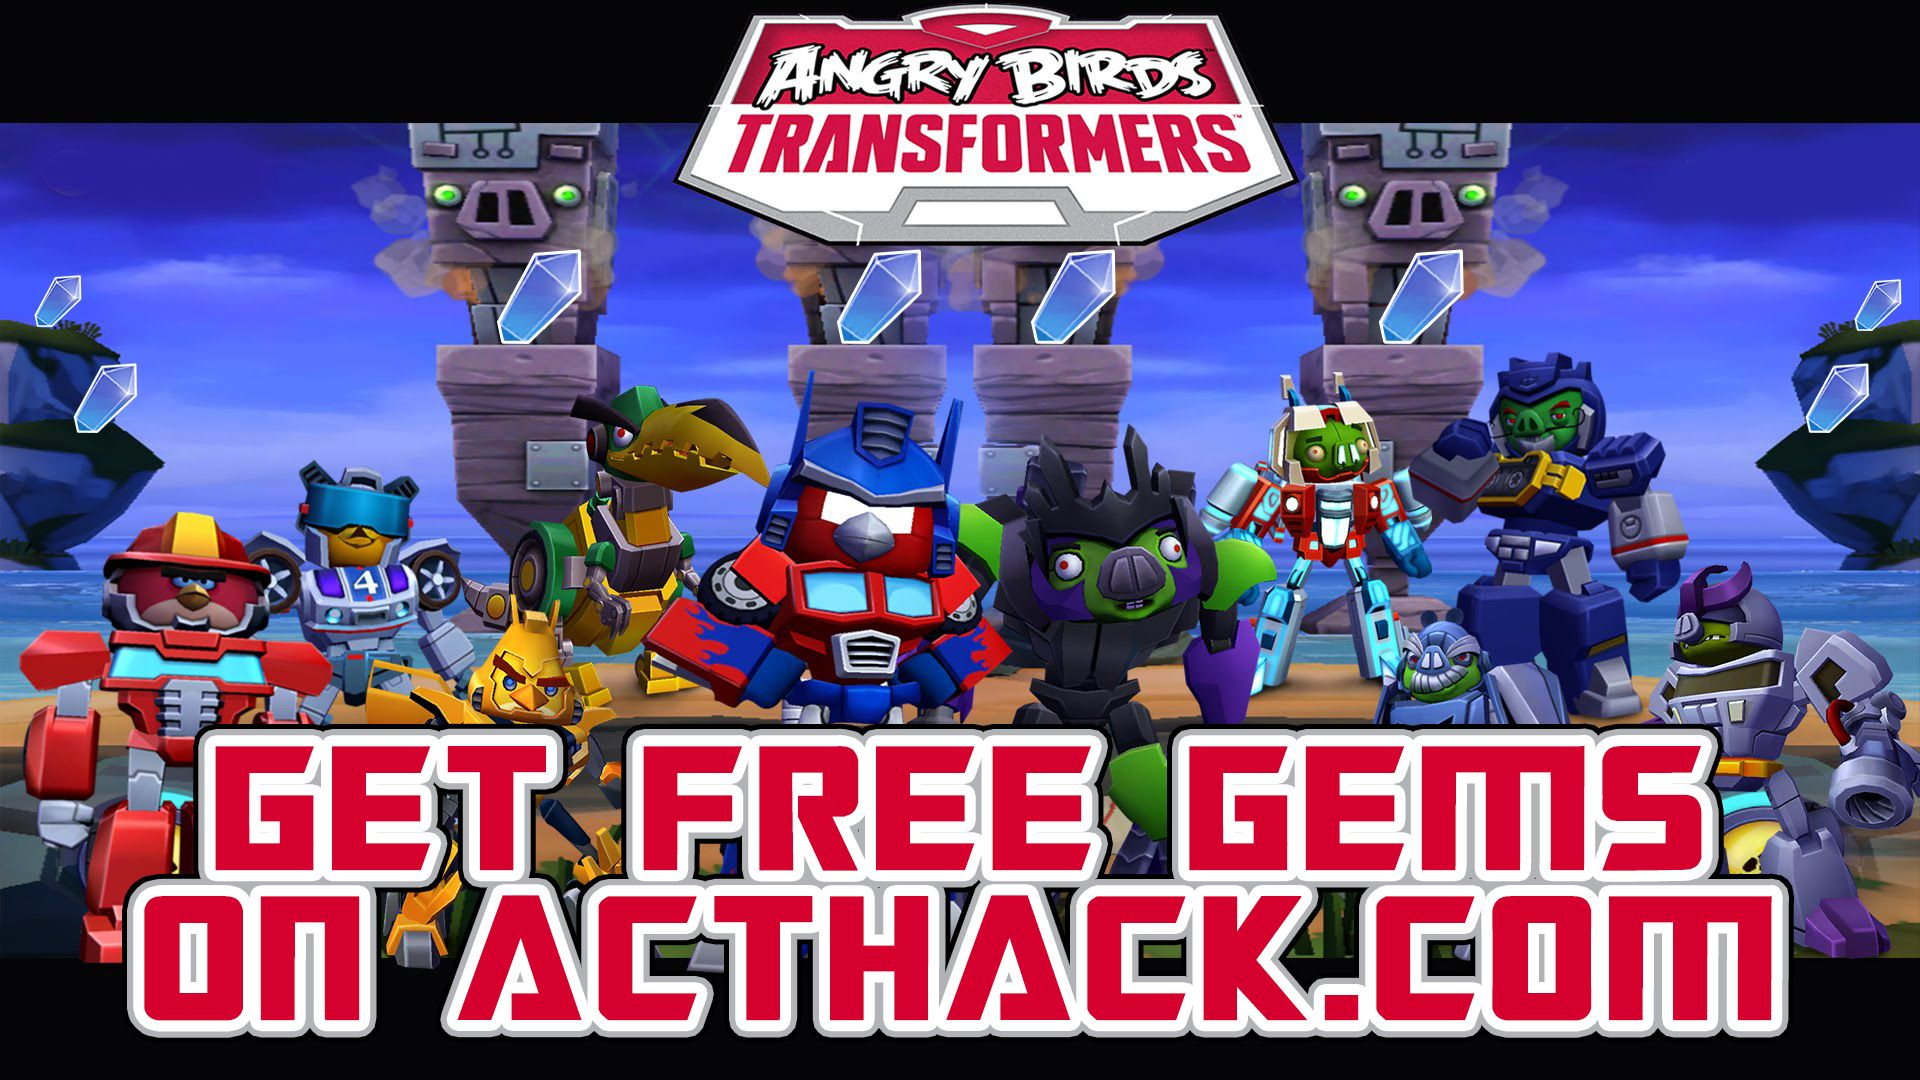 Angry Birds Transformers Hack Updates December 24 2019 At 12 45am